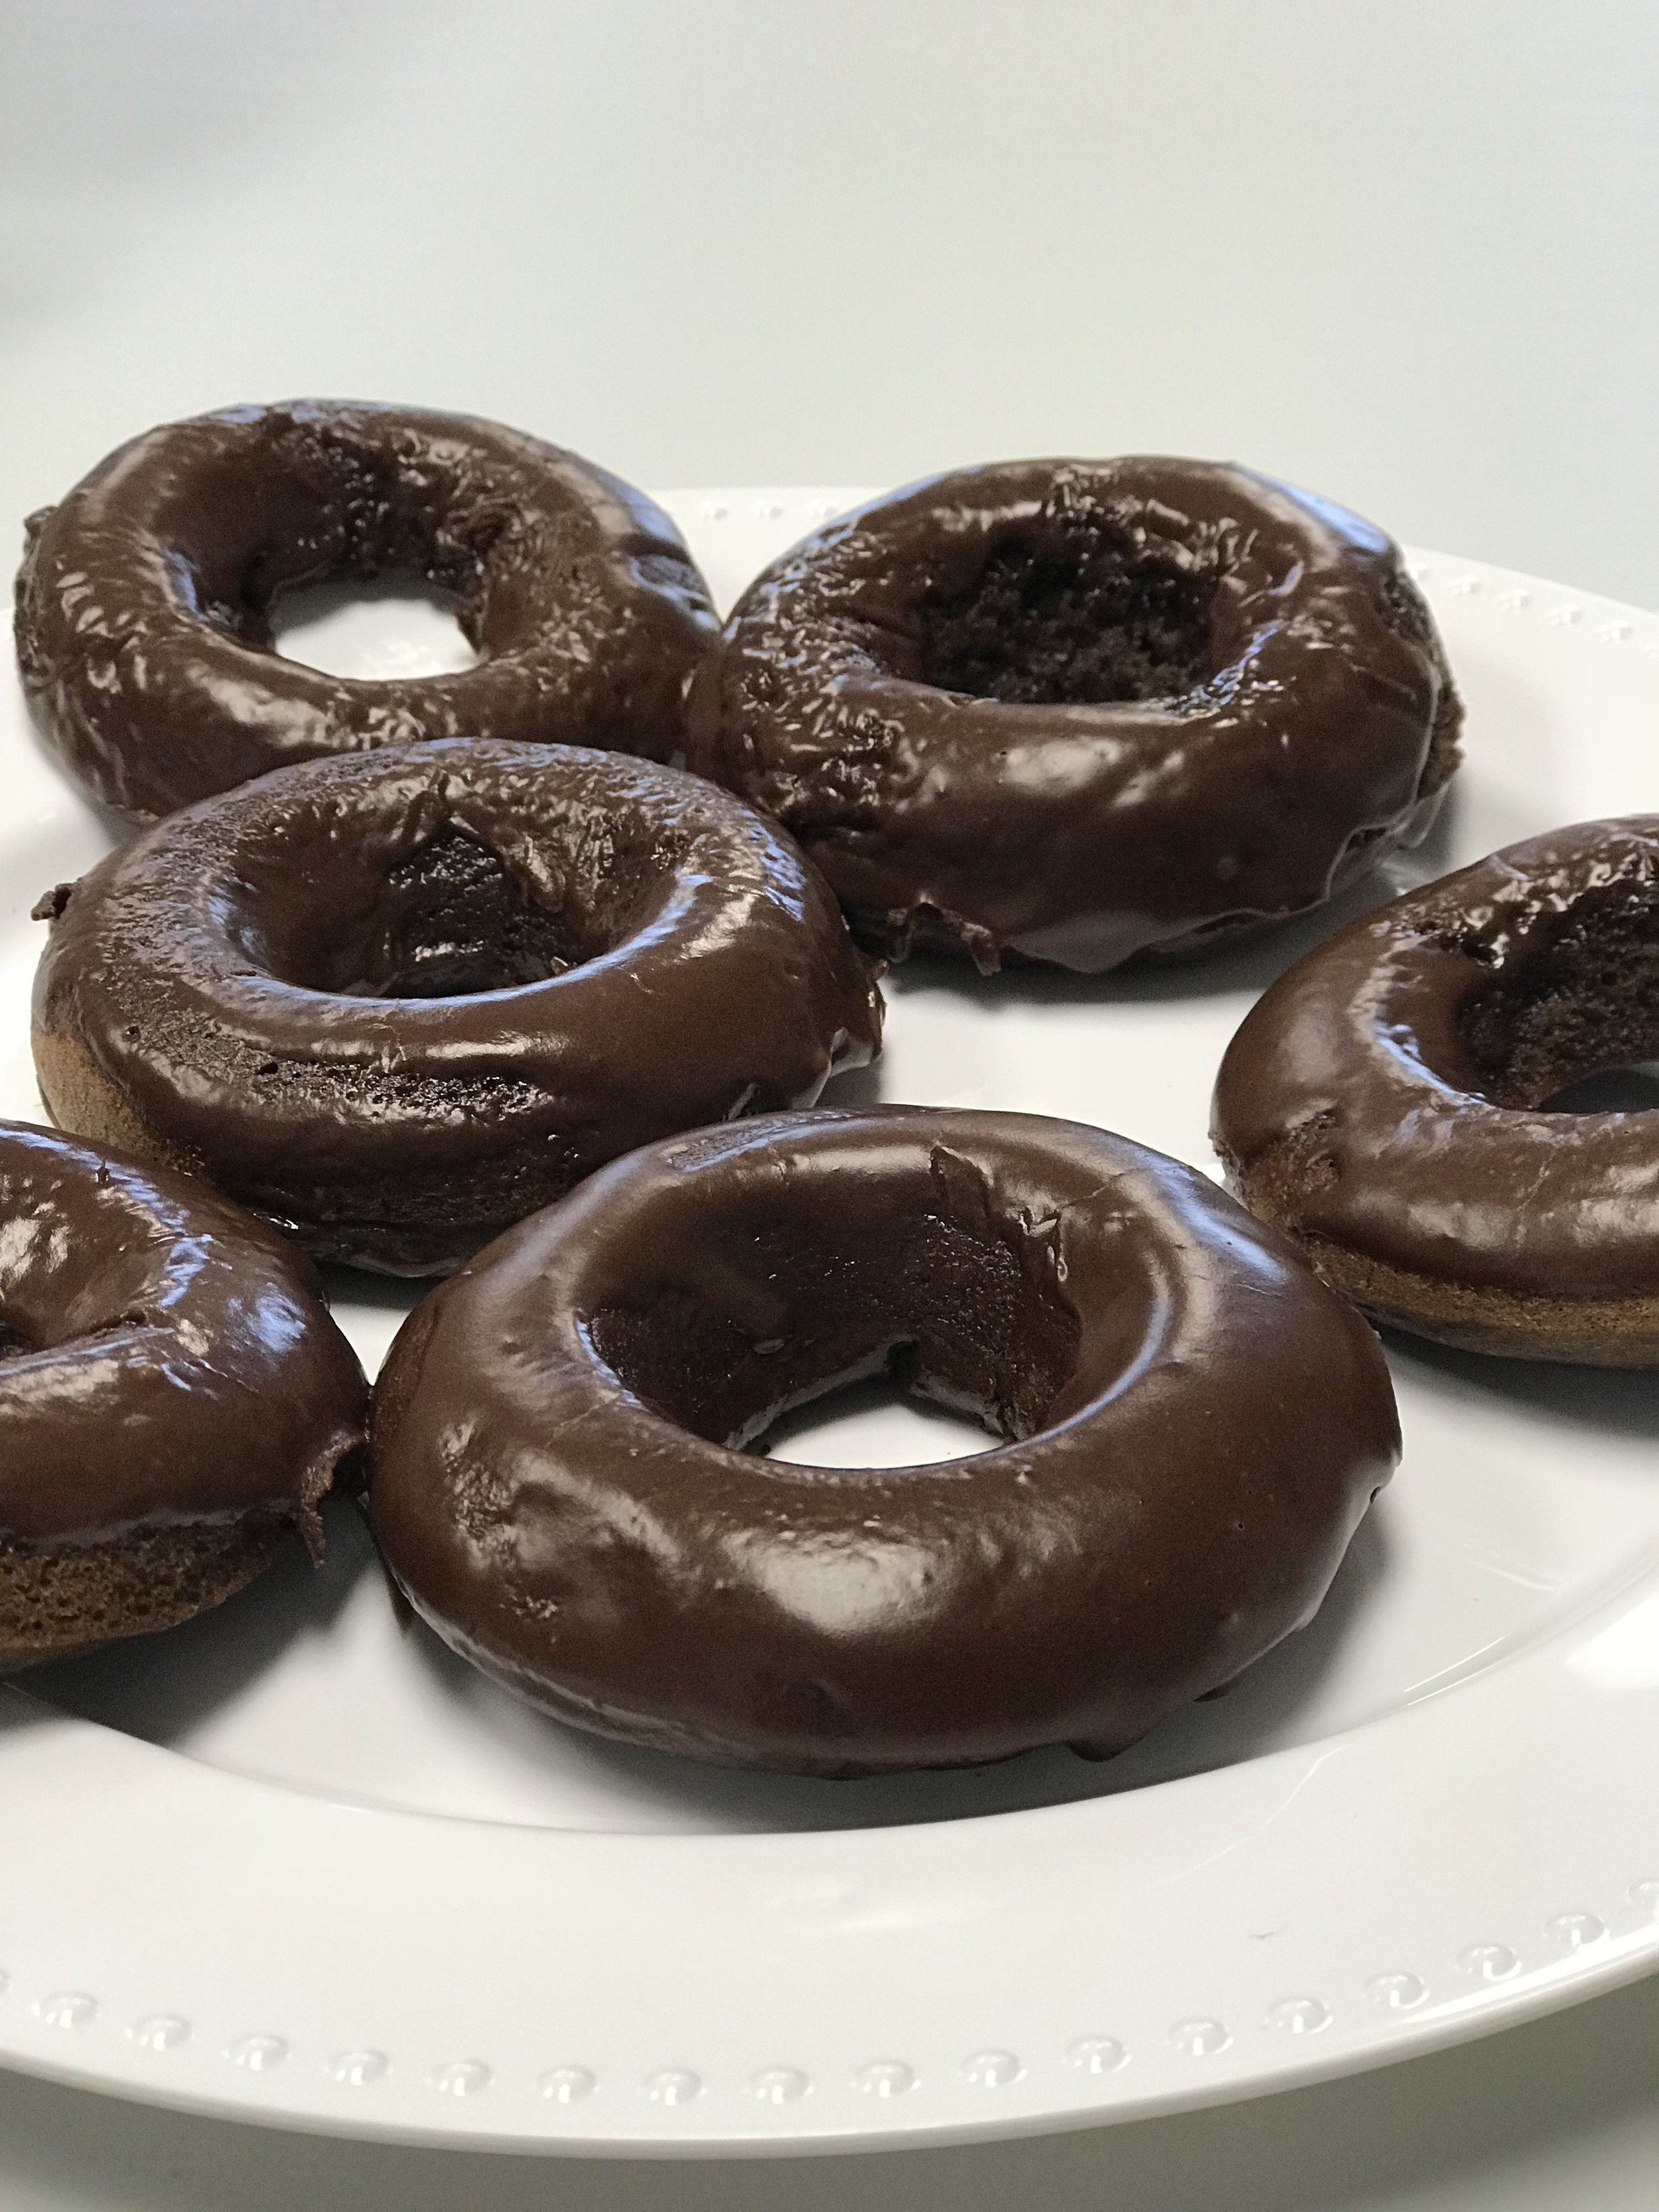 - Gluten free & chocolate version made by using gluten free flour and adding 1/4 cup cocoa